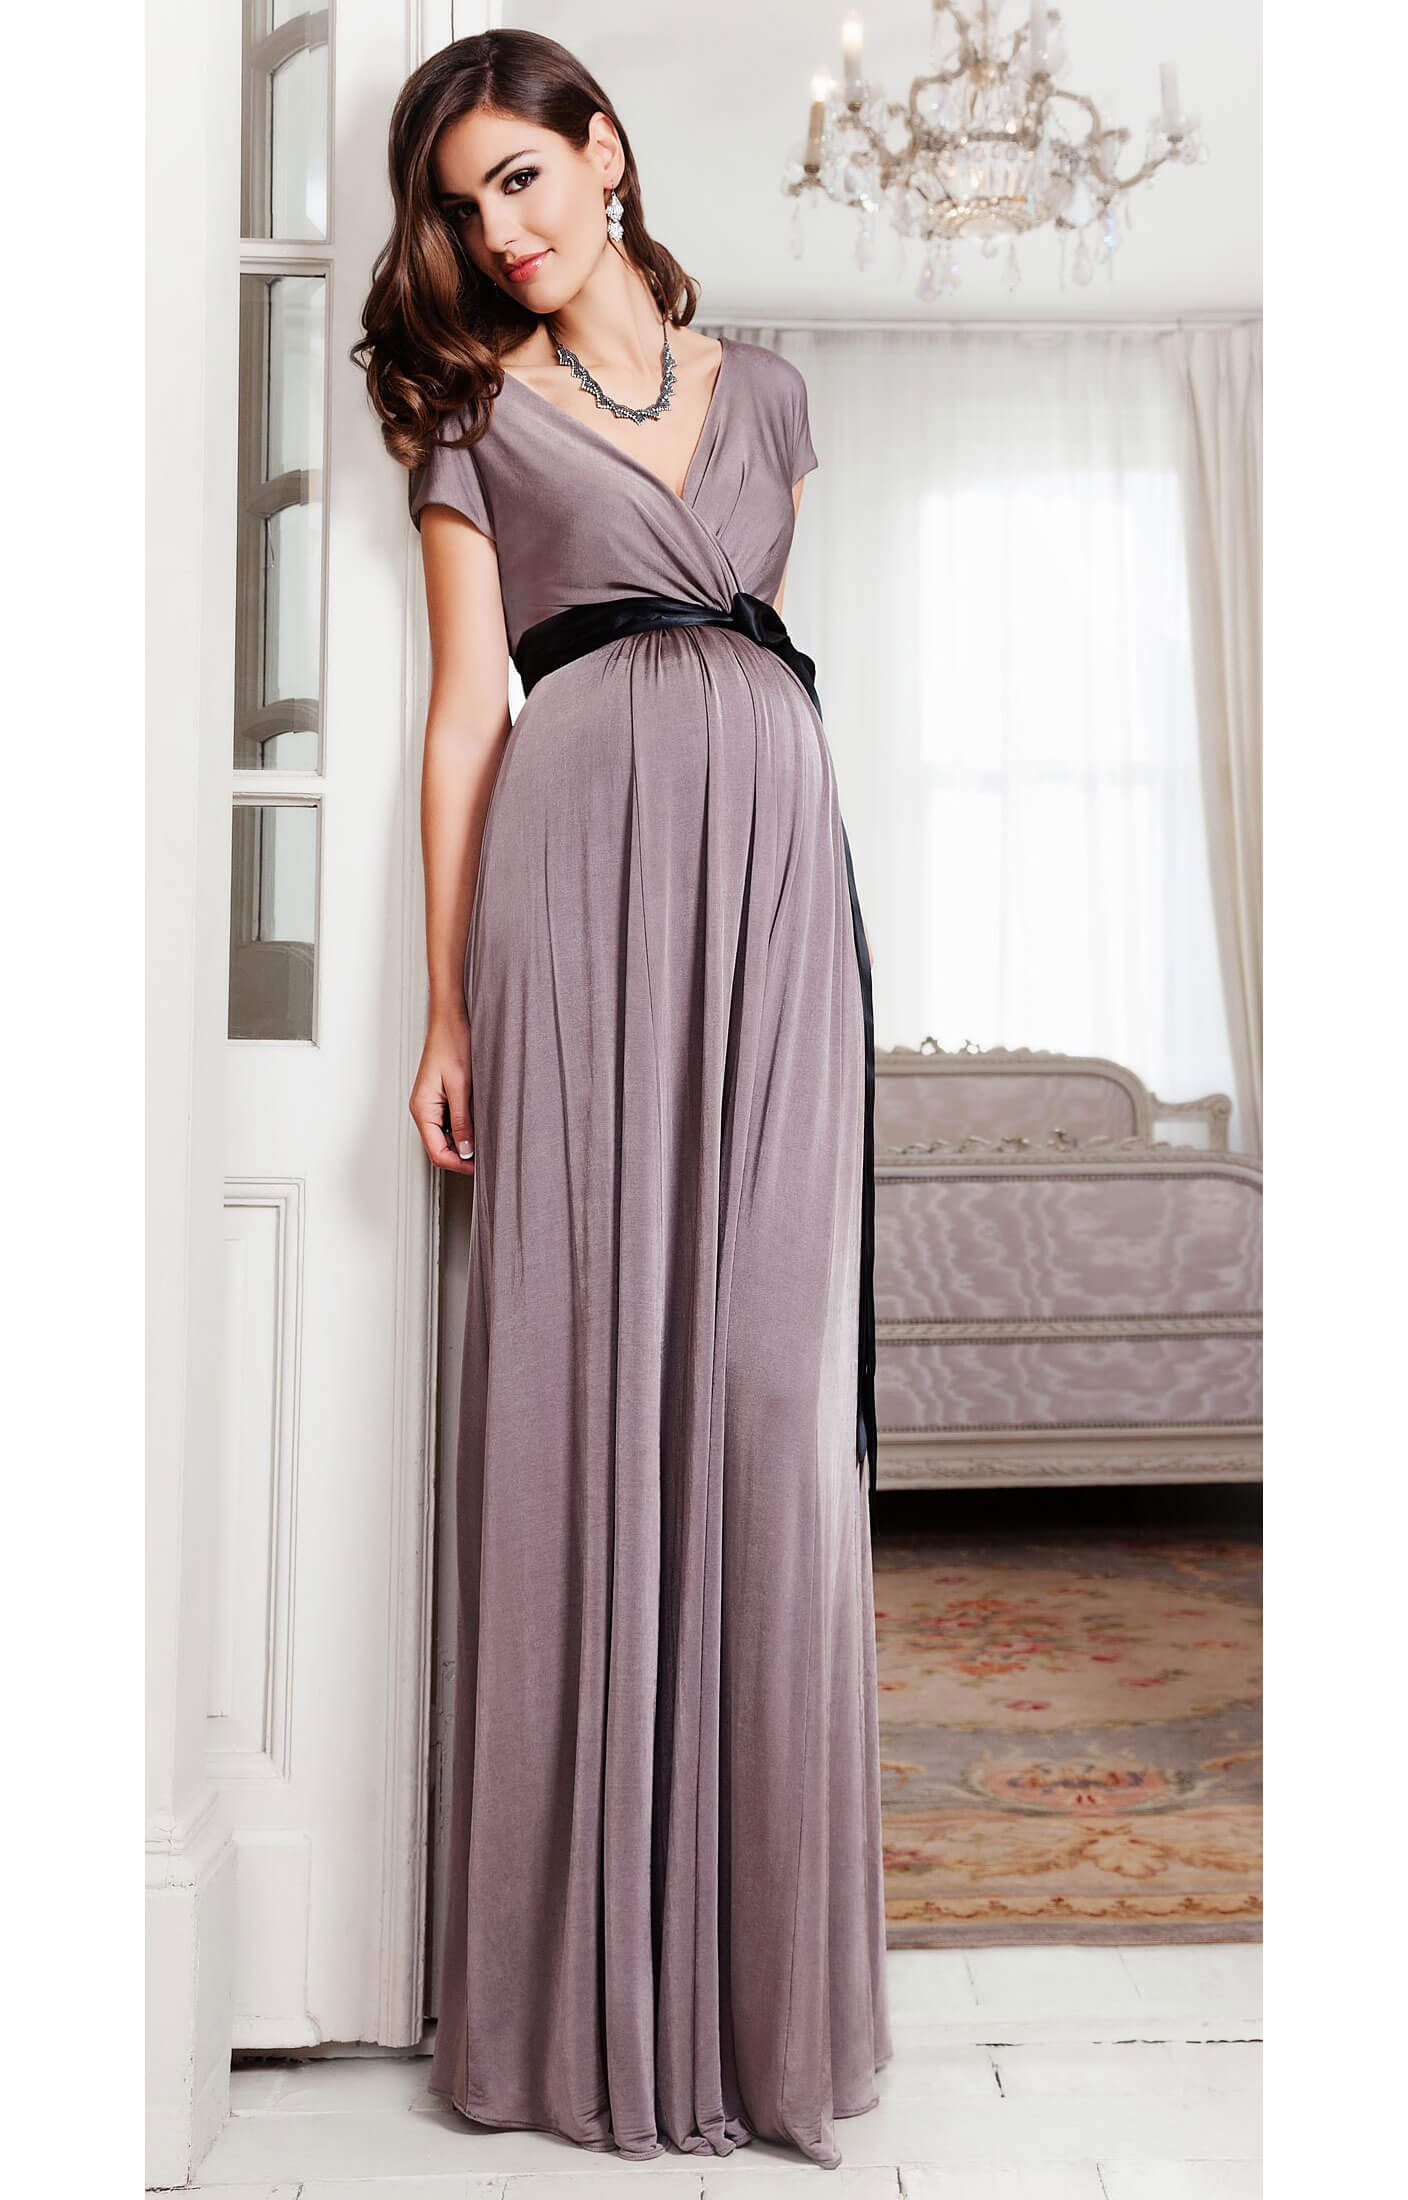 Alessandra maternity gown long mink maternity wedding for Wedding guest pregnancy dresses